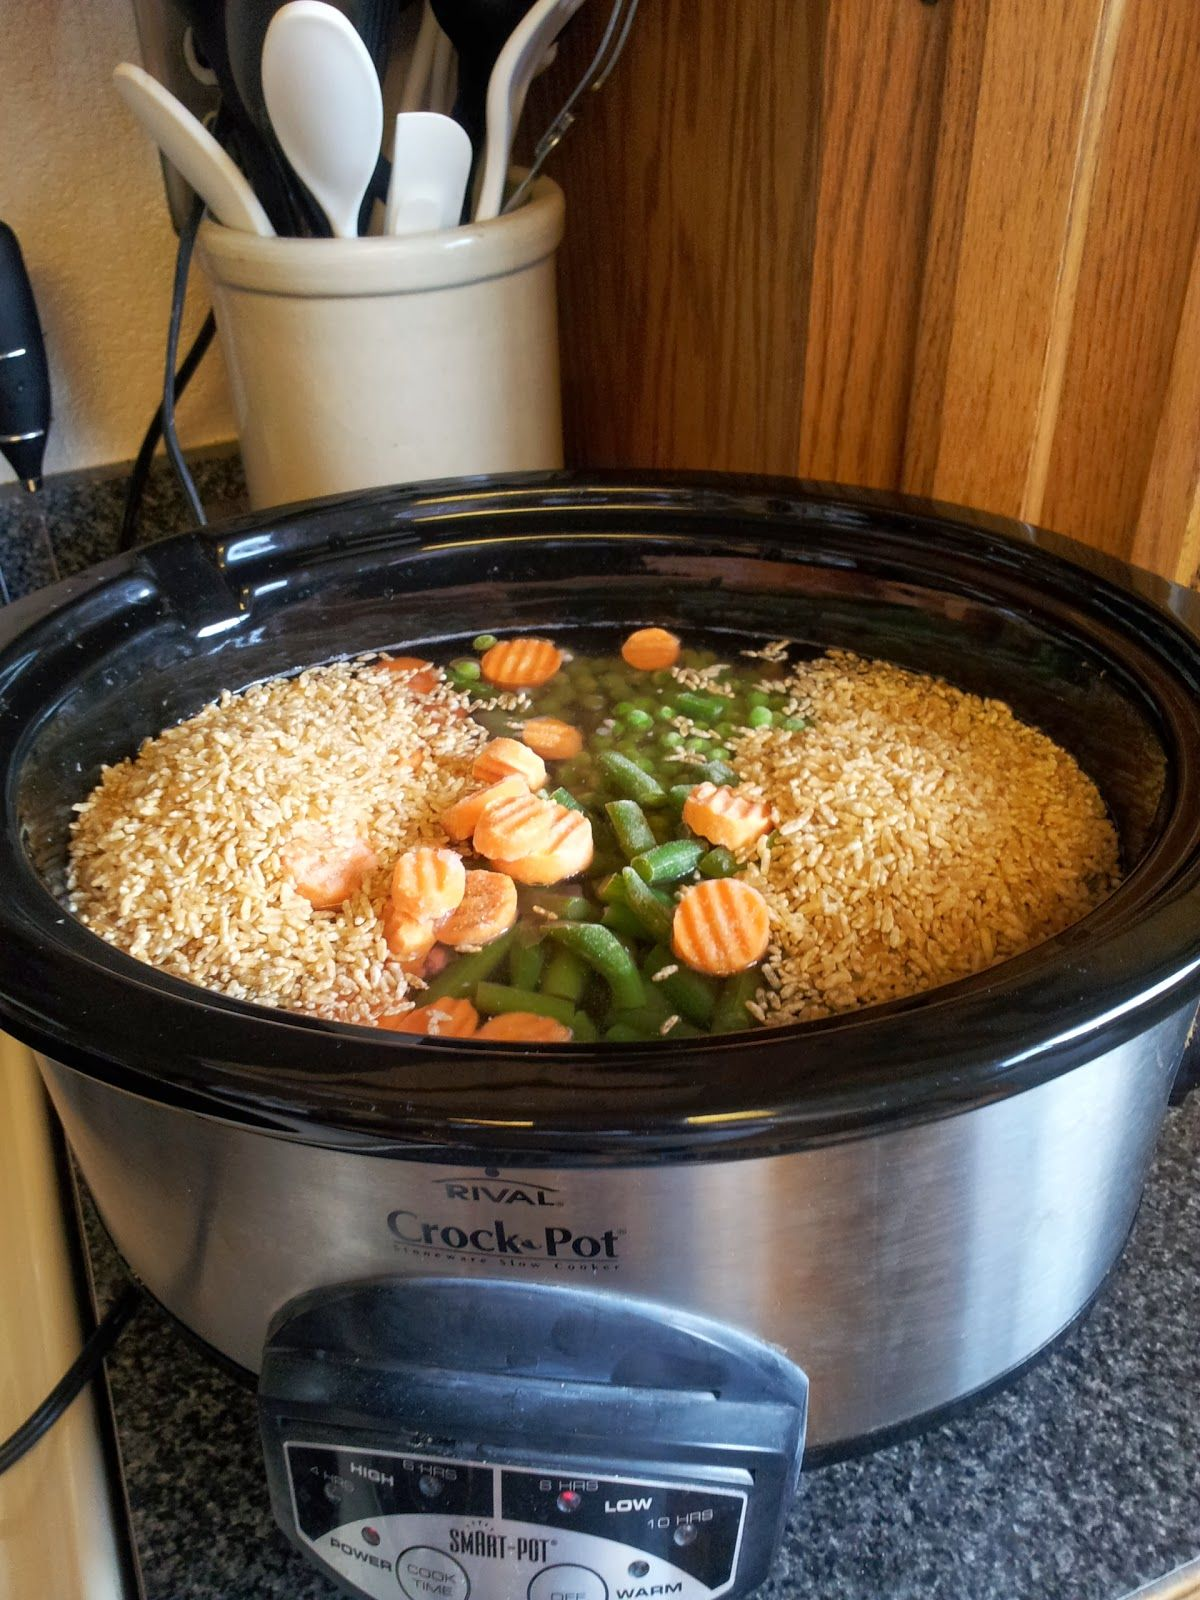 How to make your own dog food! Easier than you think